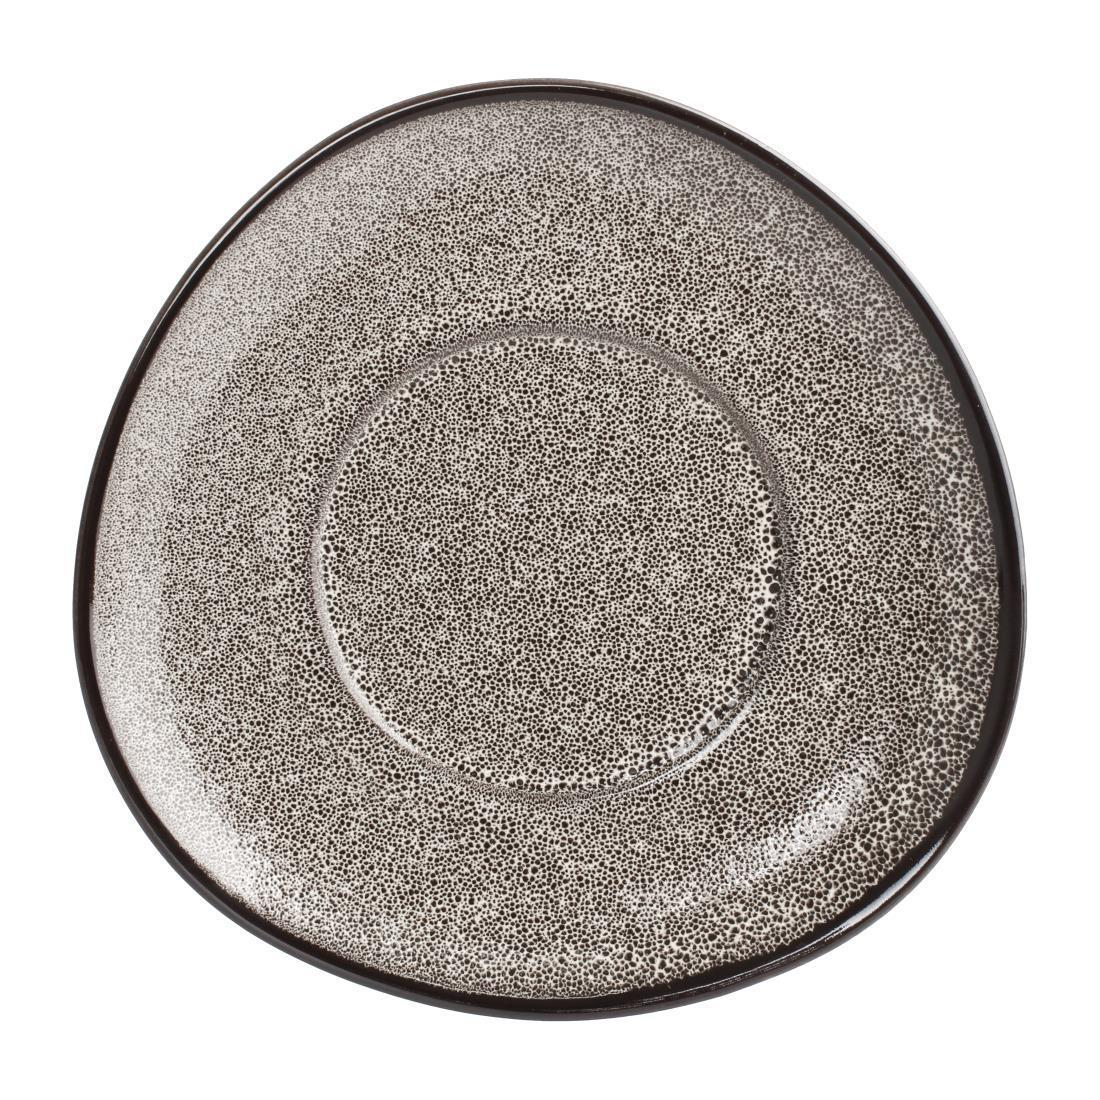 Olympia Mineral Triangular Cappuccino Saucer Grey Stone 150mm